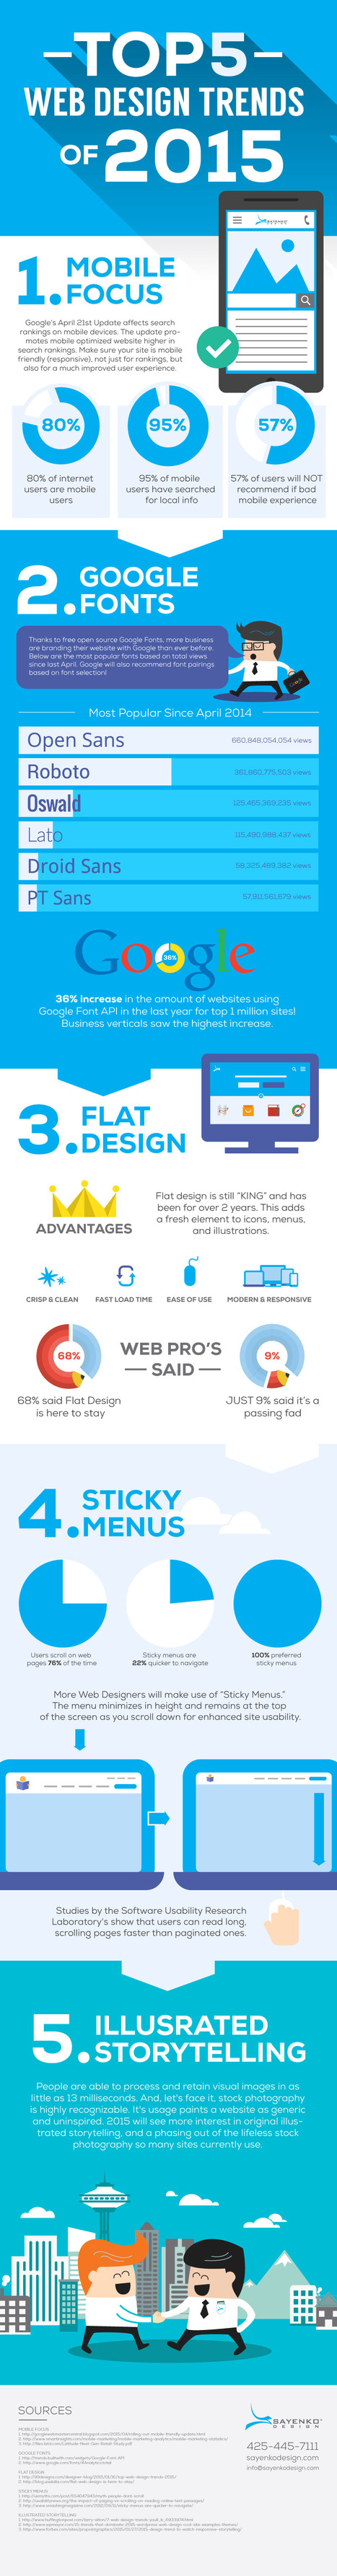 The Biggest Web Design Trends of 2015 #Infographic | WebsiteDesign | Scoop.it